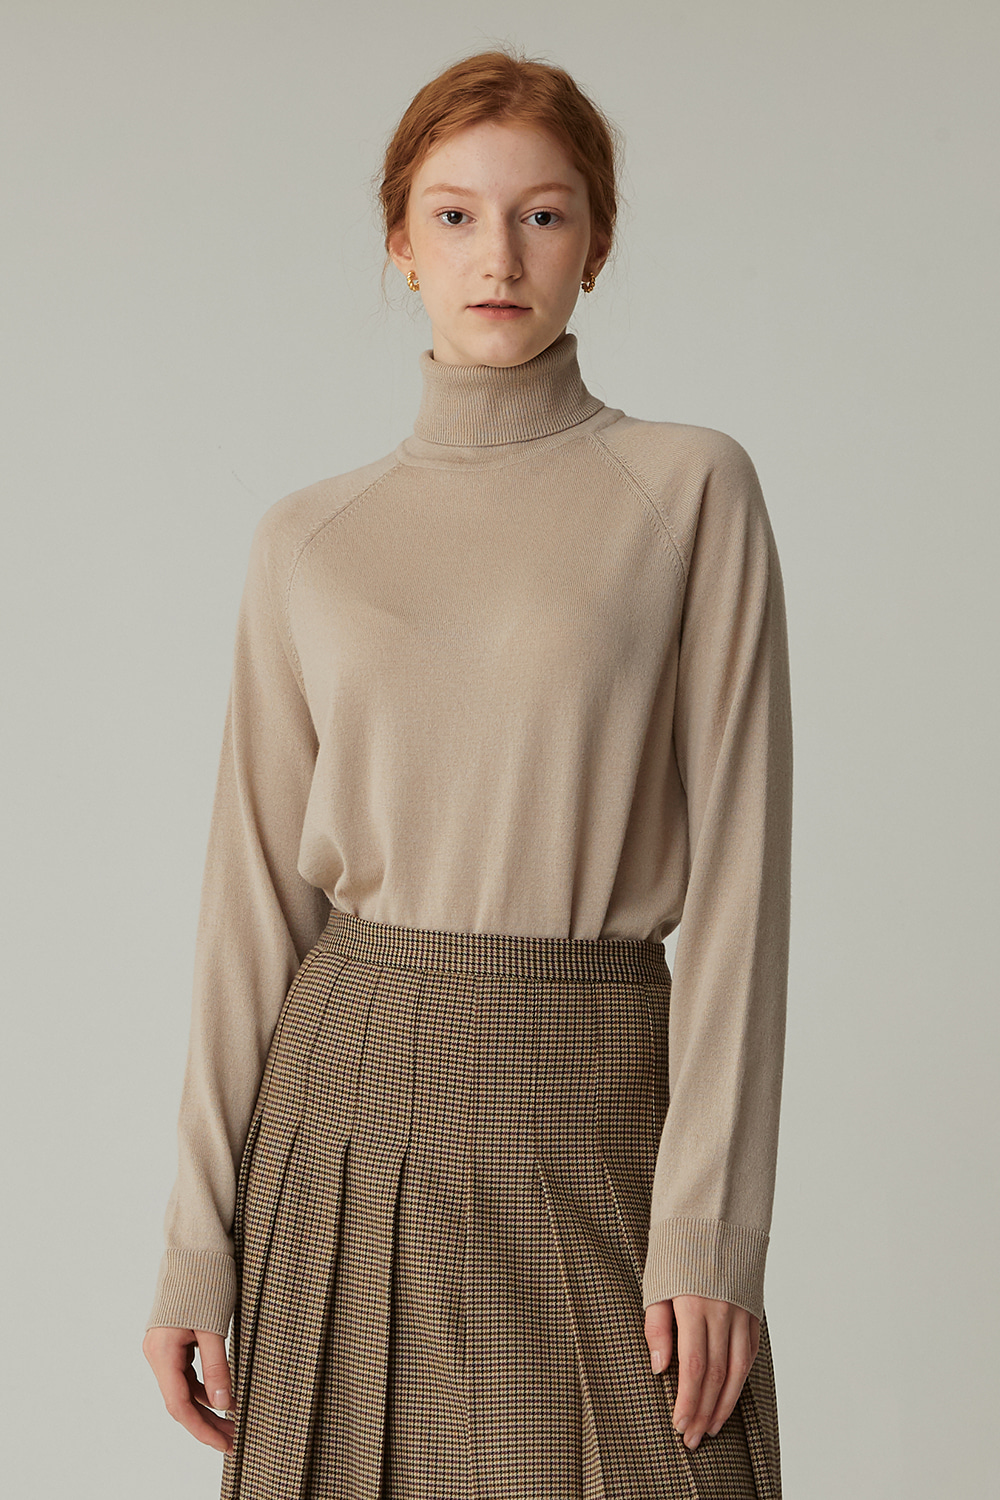 MERINO WOOL TURTLENECK KNIT (EGGNOG)